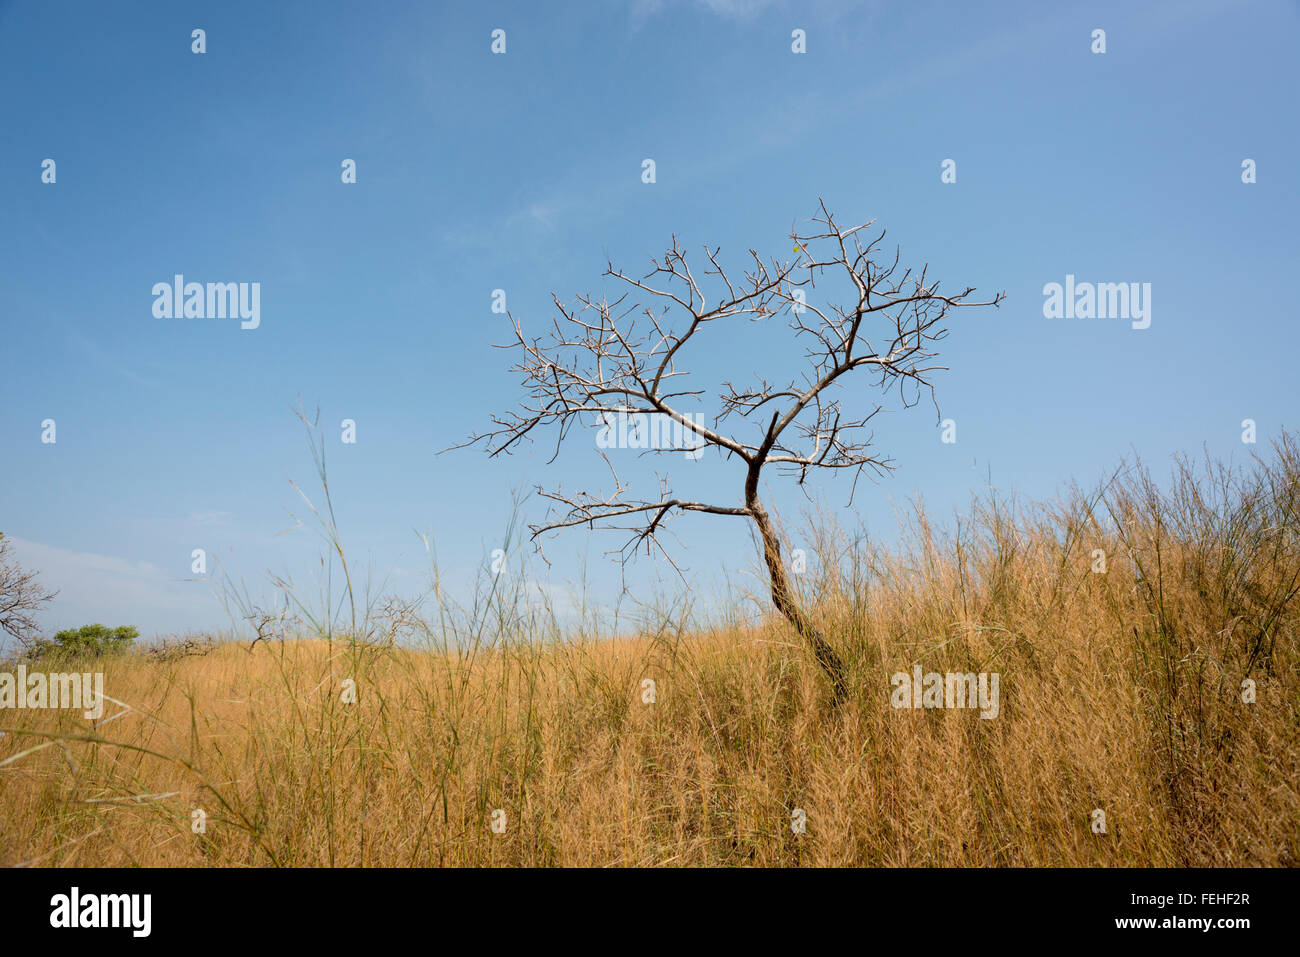 A lone tree in the savannah grassland of Orango, the largest of the Bijagos islands, Guinea Bissau - Stock Image